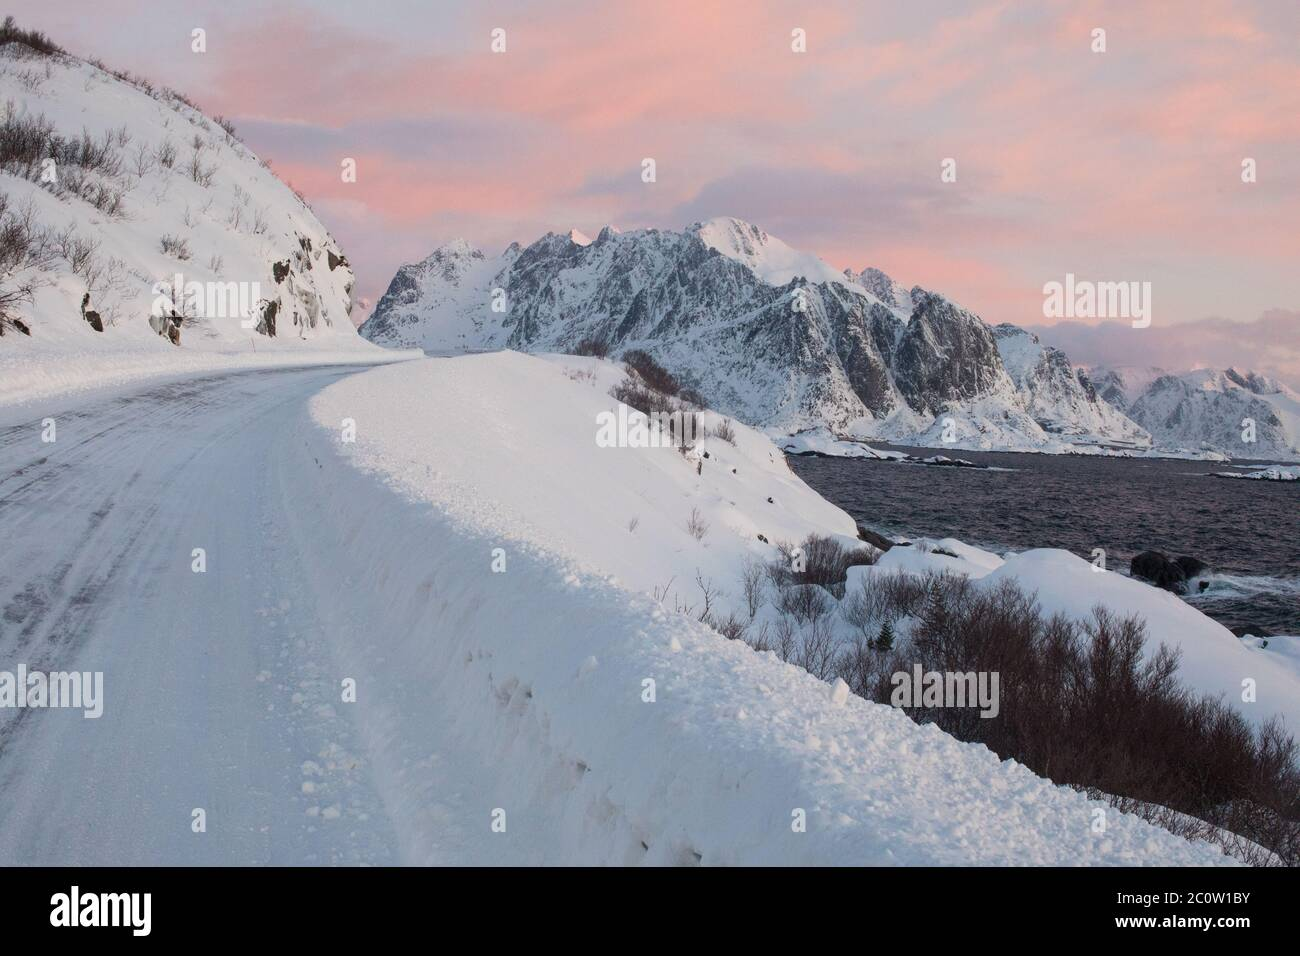 Pink skies and ice mountain roads in Norway. Stock Photo